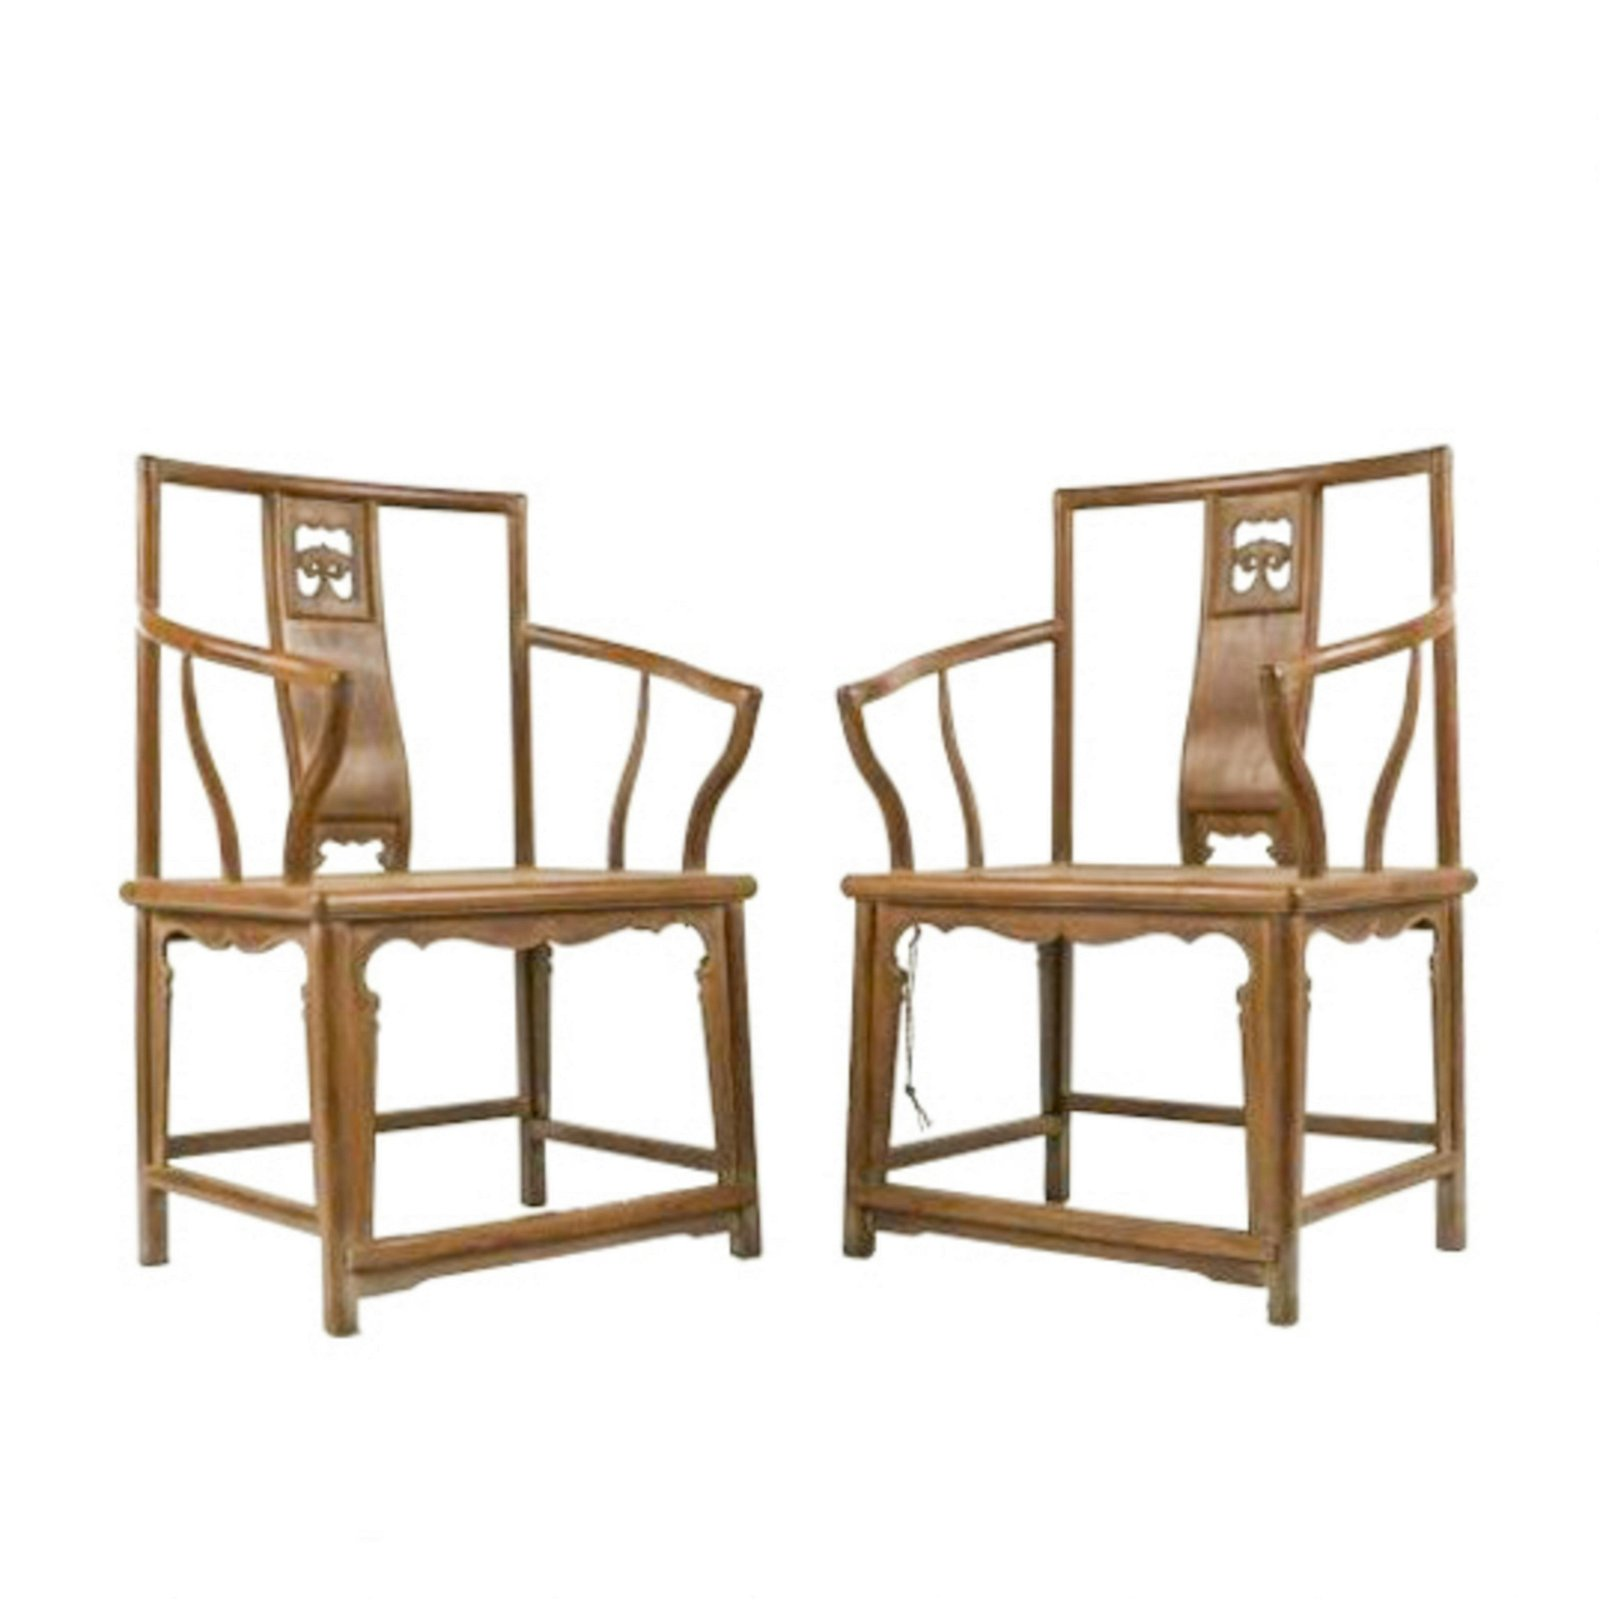 PAIR OF 18TH C HUANGHUALI LOWBACK ARMCHAIRS (MEIGUI YI)